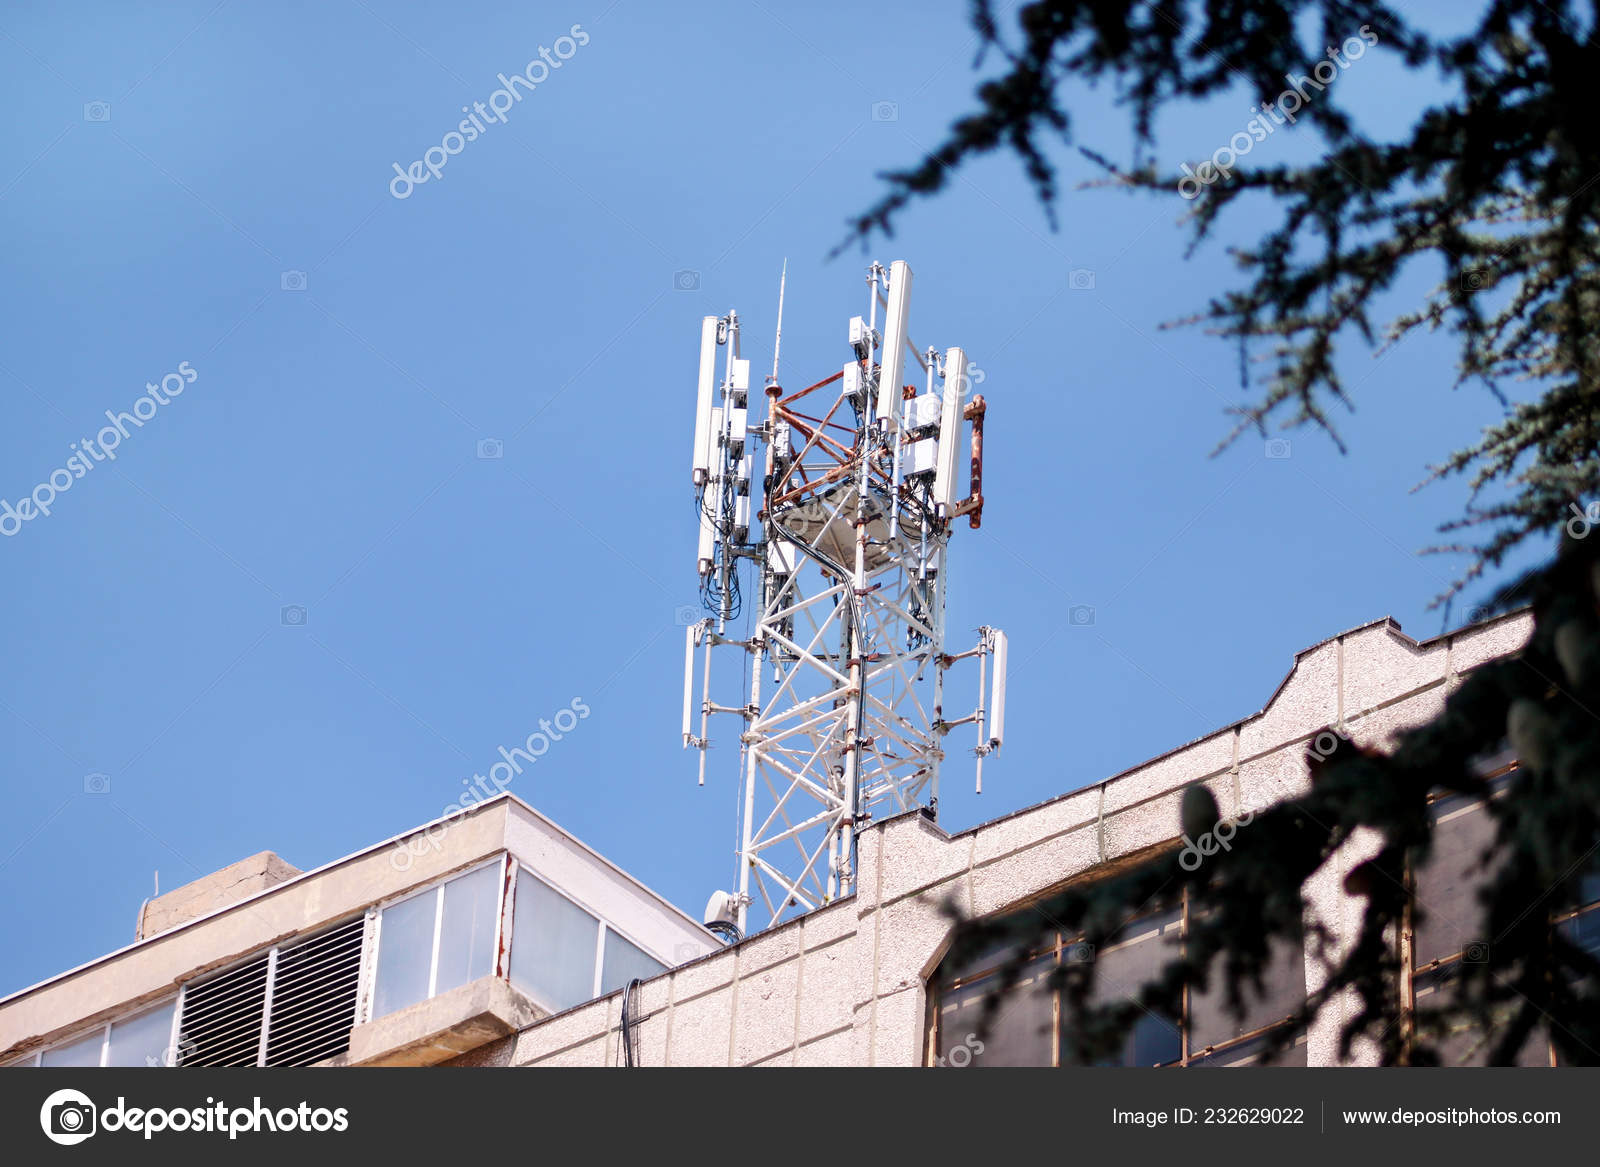 Telecommunication Base Stations Network Repeaters Roof